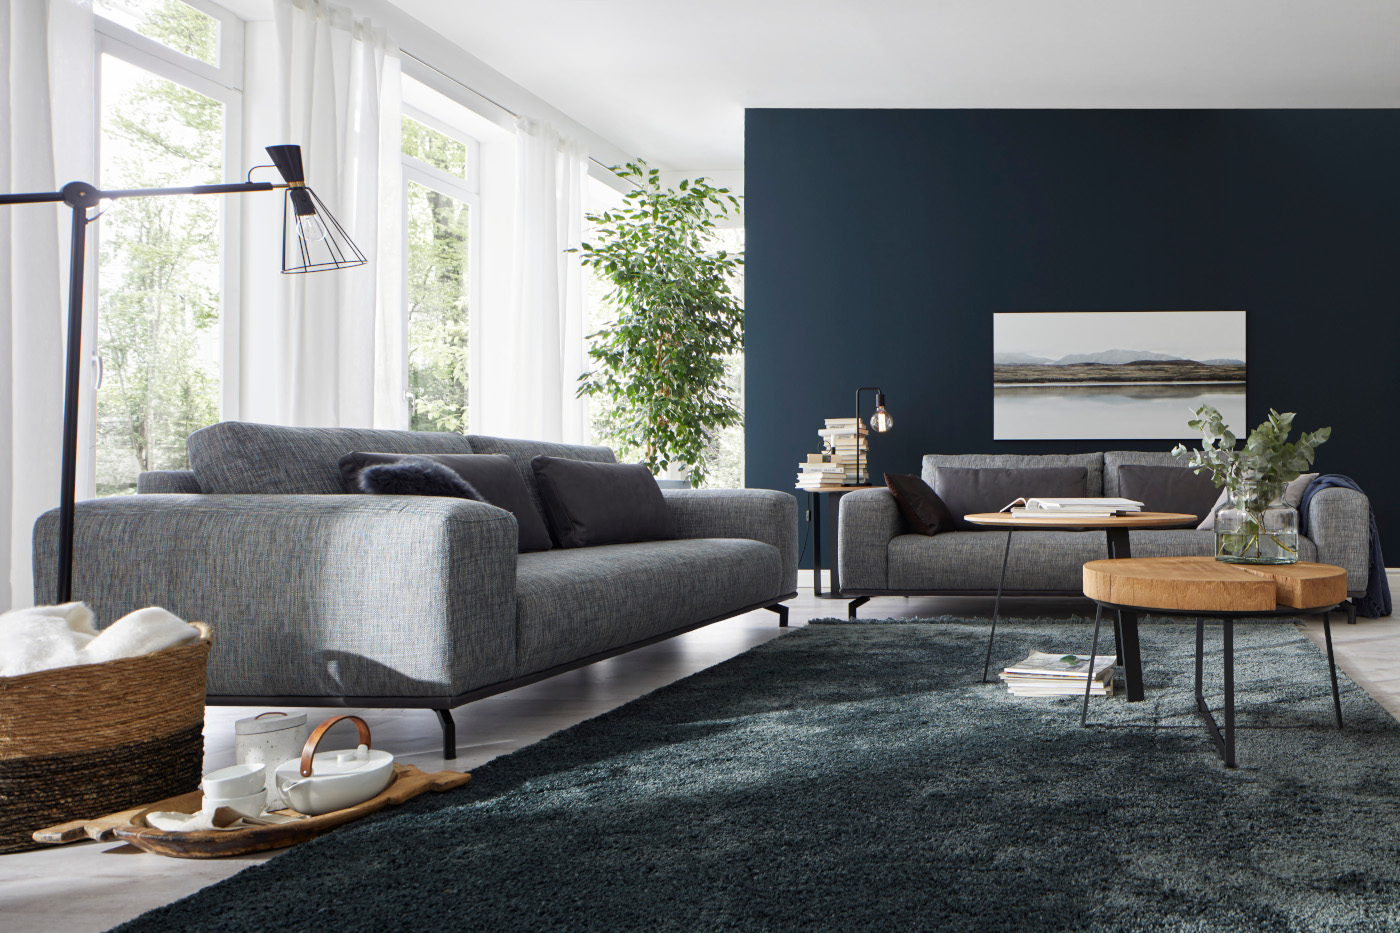 sofa 3 sitzer stoff grau meliert natura brooklyn sofas couchen wohnzimmer m bel wikinger. Black Bedroom Furniture Sets. Home Design Ideas